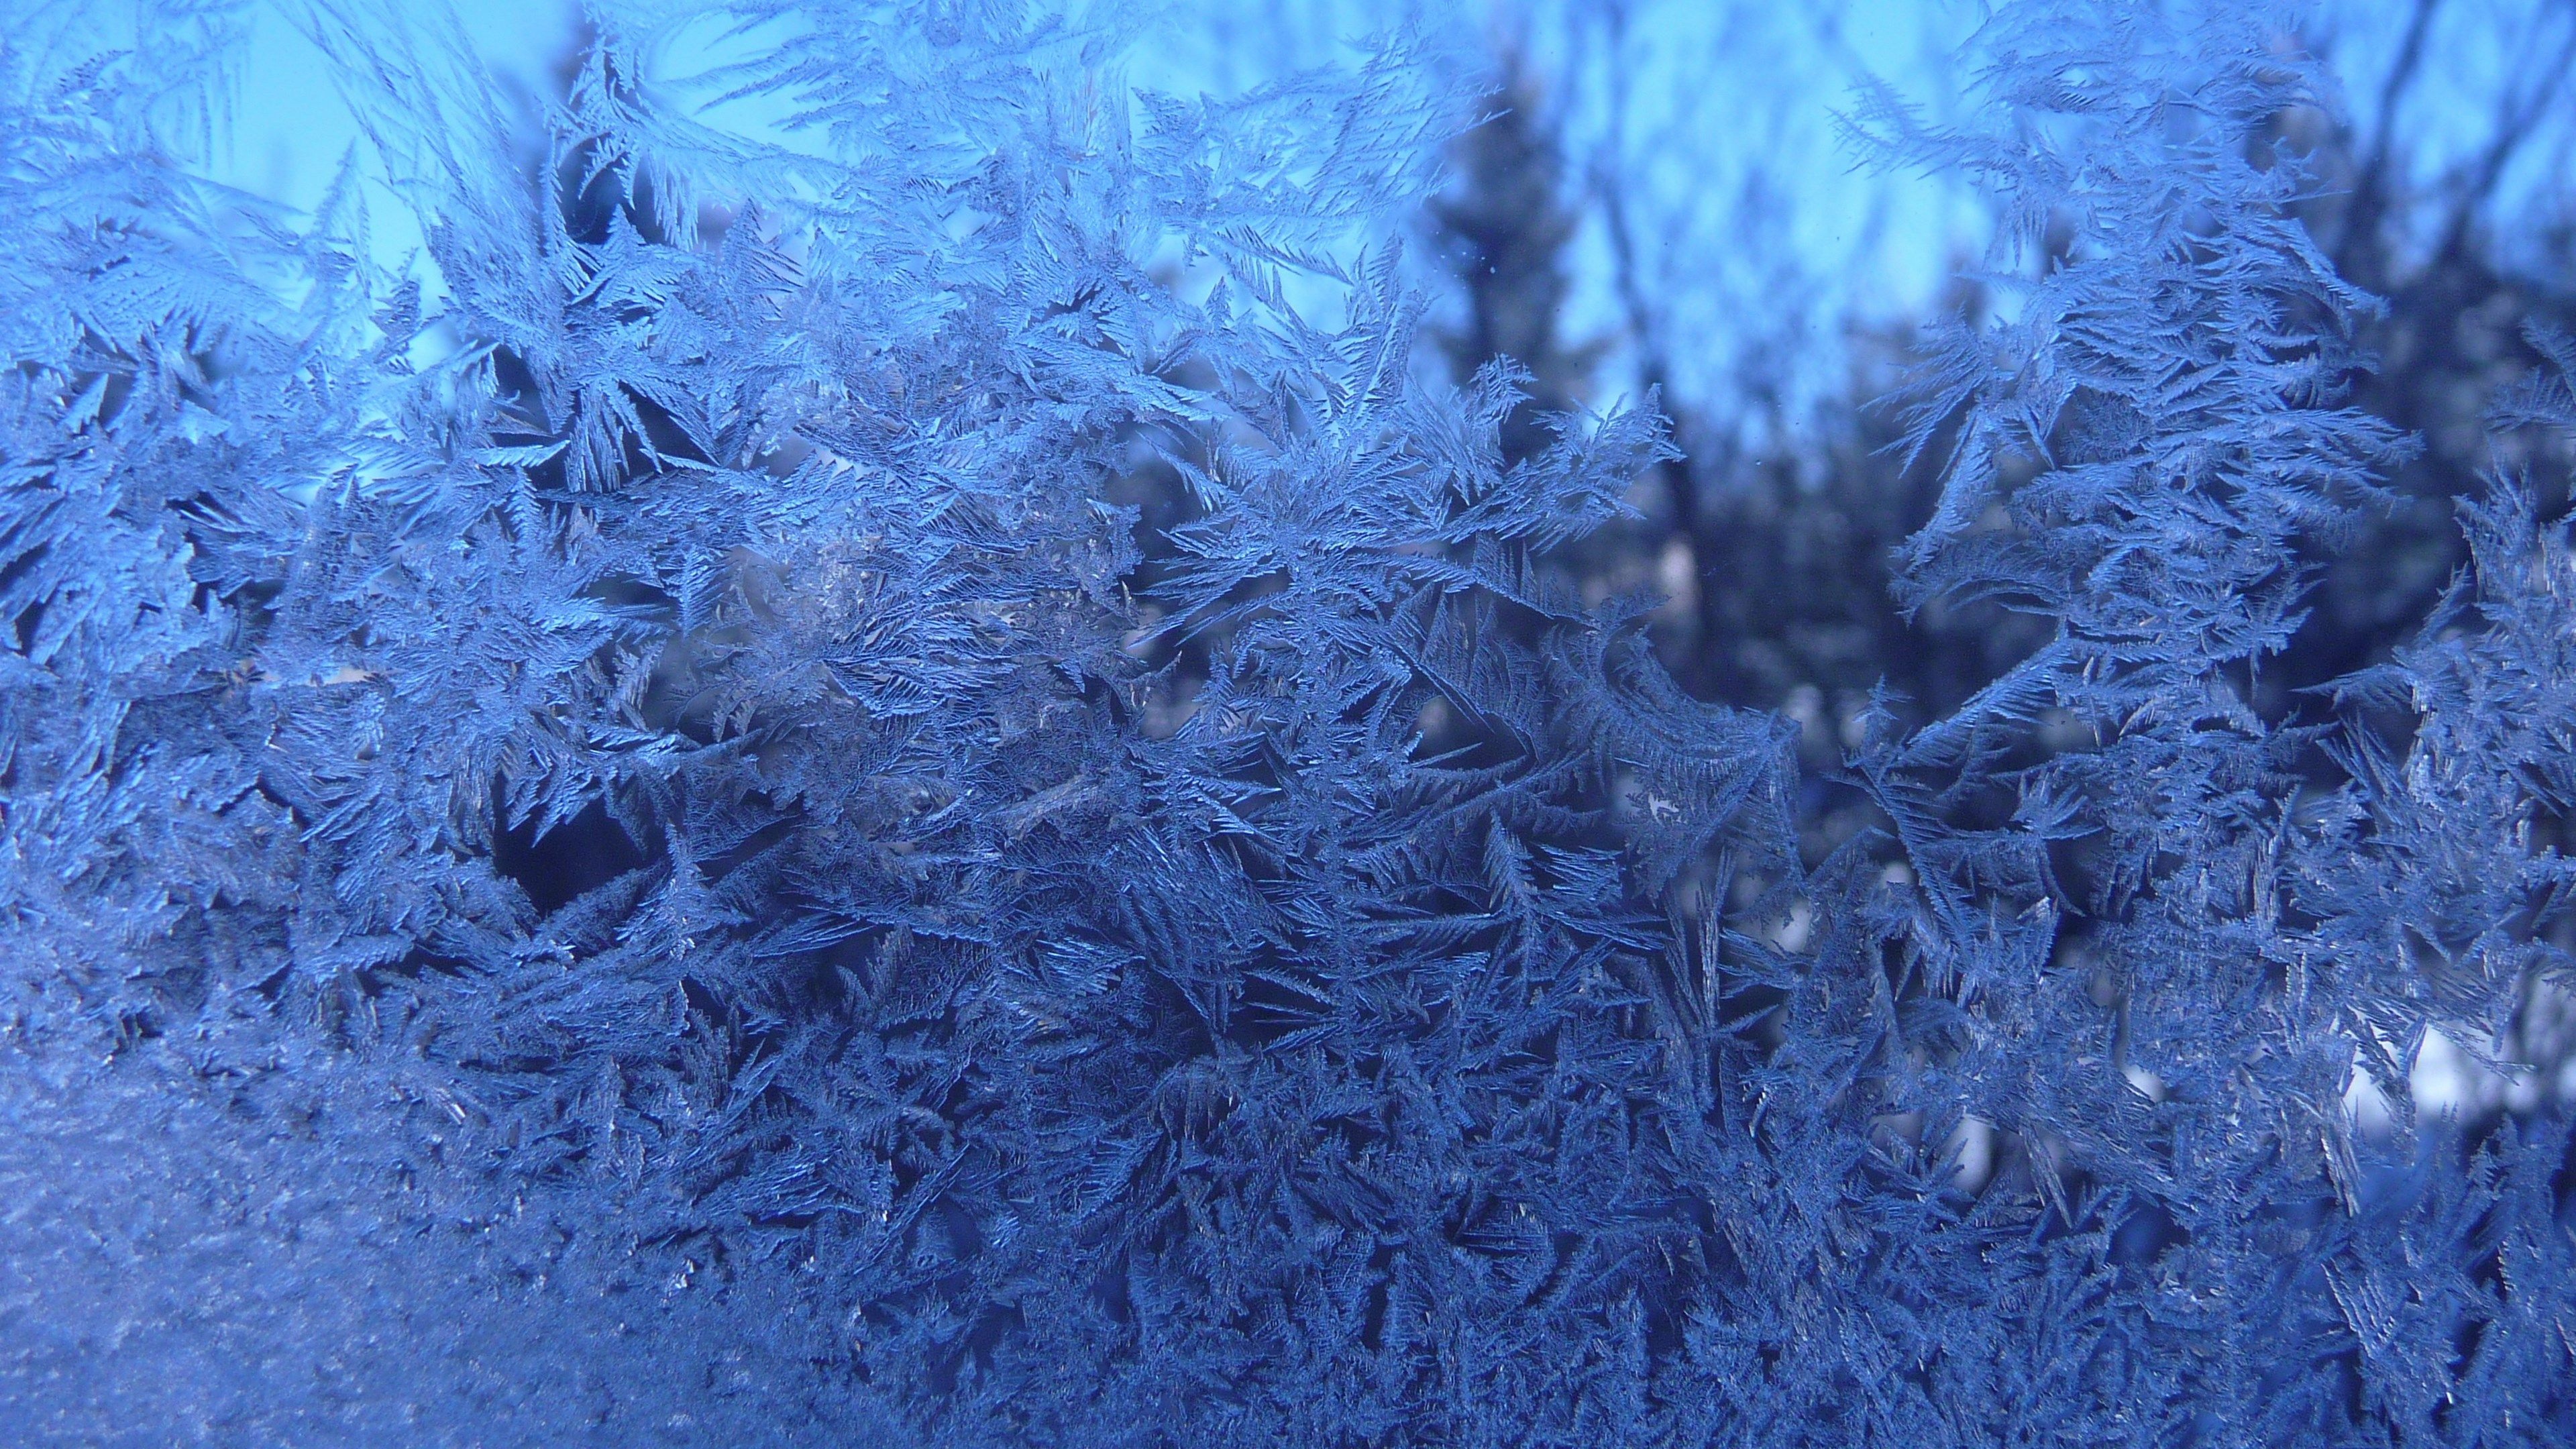 frosted glass window picture